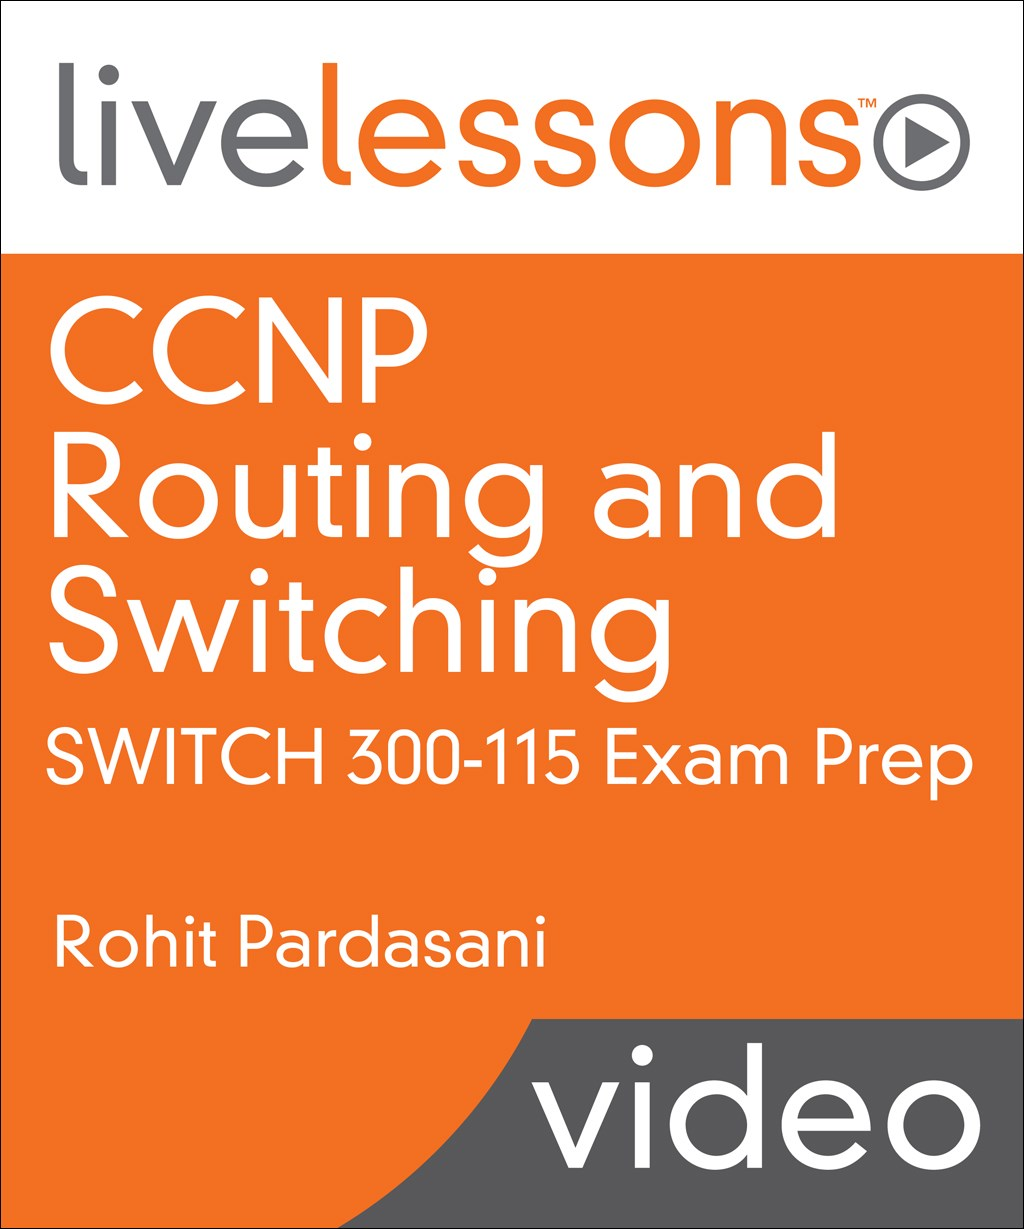 CCNP Routing and Switching SWITCH 300-115 Exam Prep